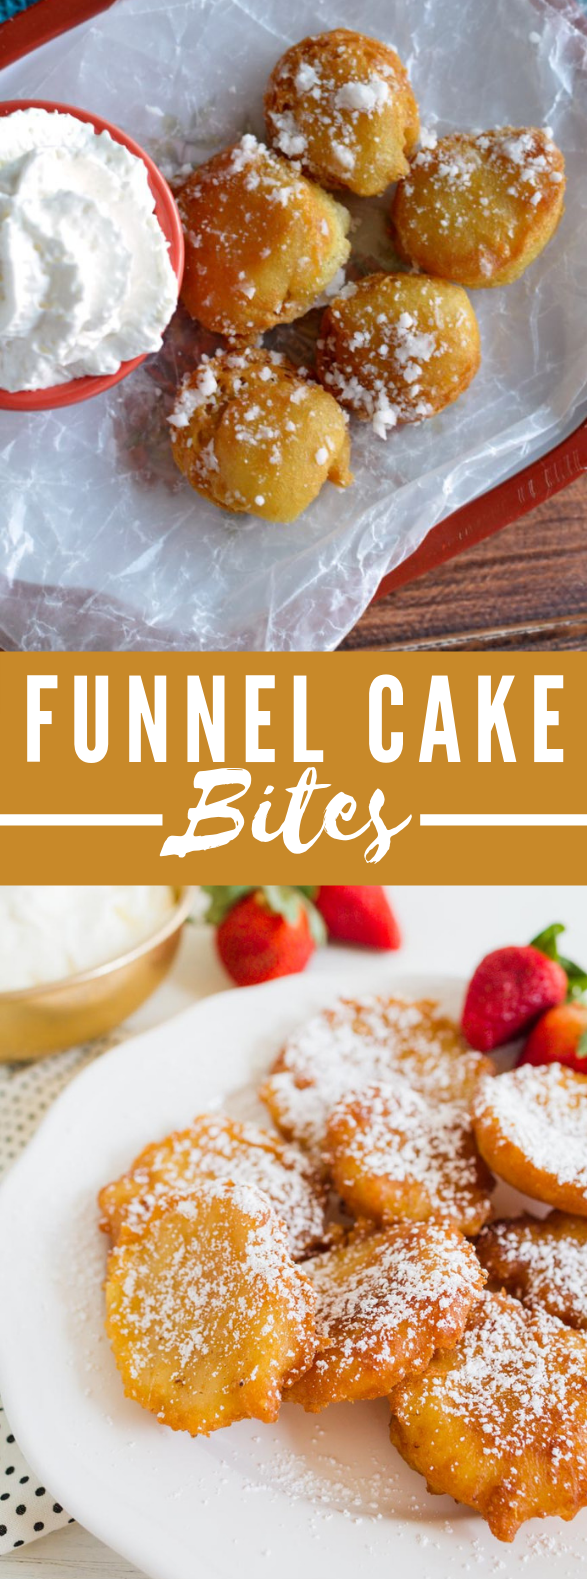 Funnel Cake Bites Recipe #desserts #sugar